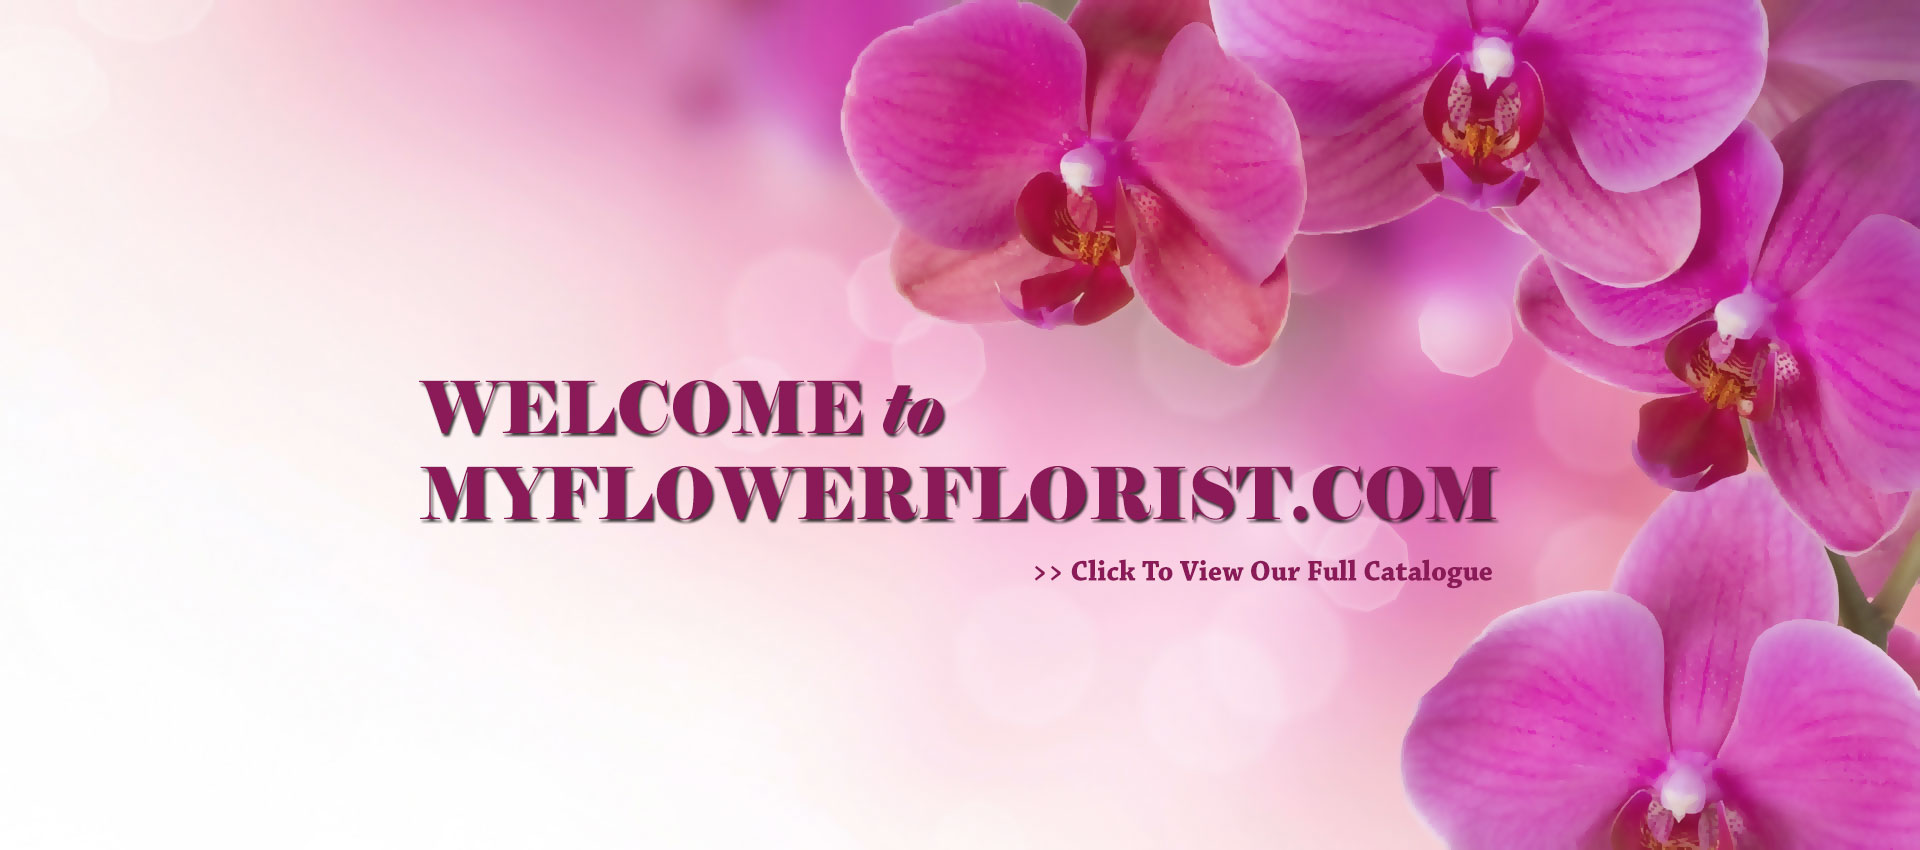 Myflowerflorist.com | Best Online in Malaysia | Online Flower Delivery Malaysia | Florist Malaysia